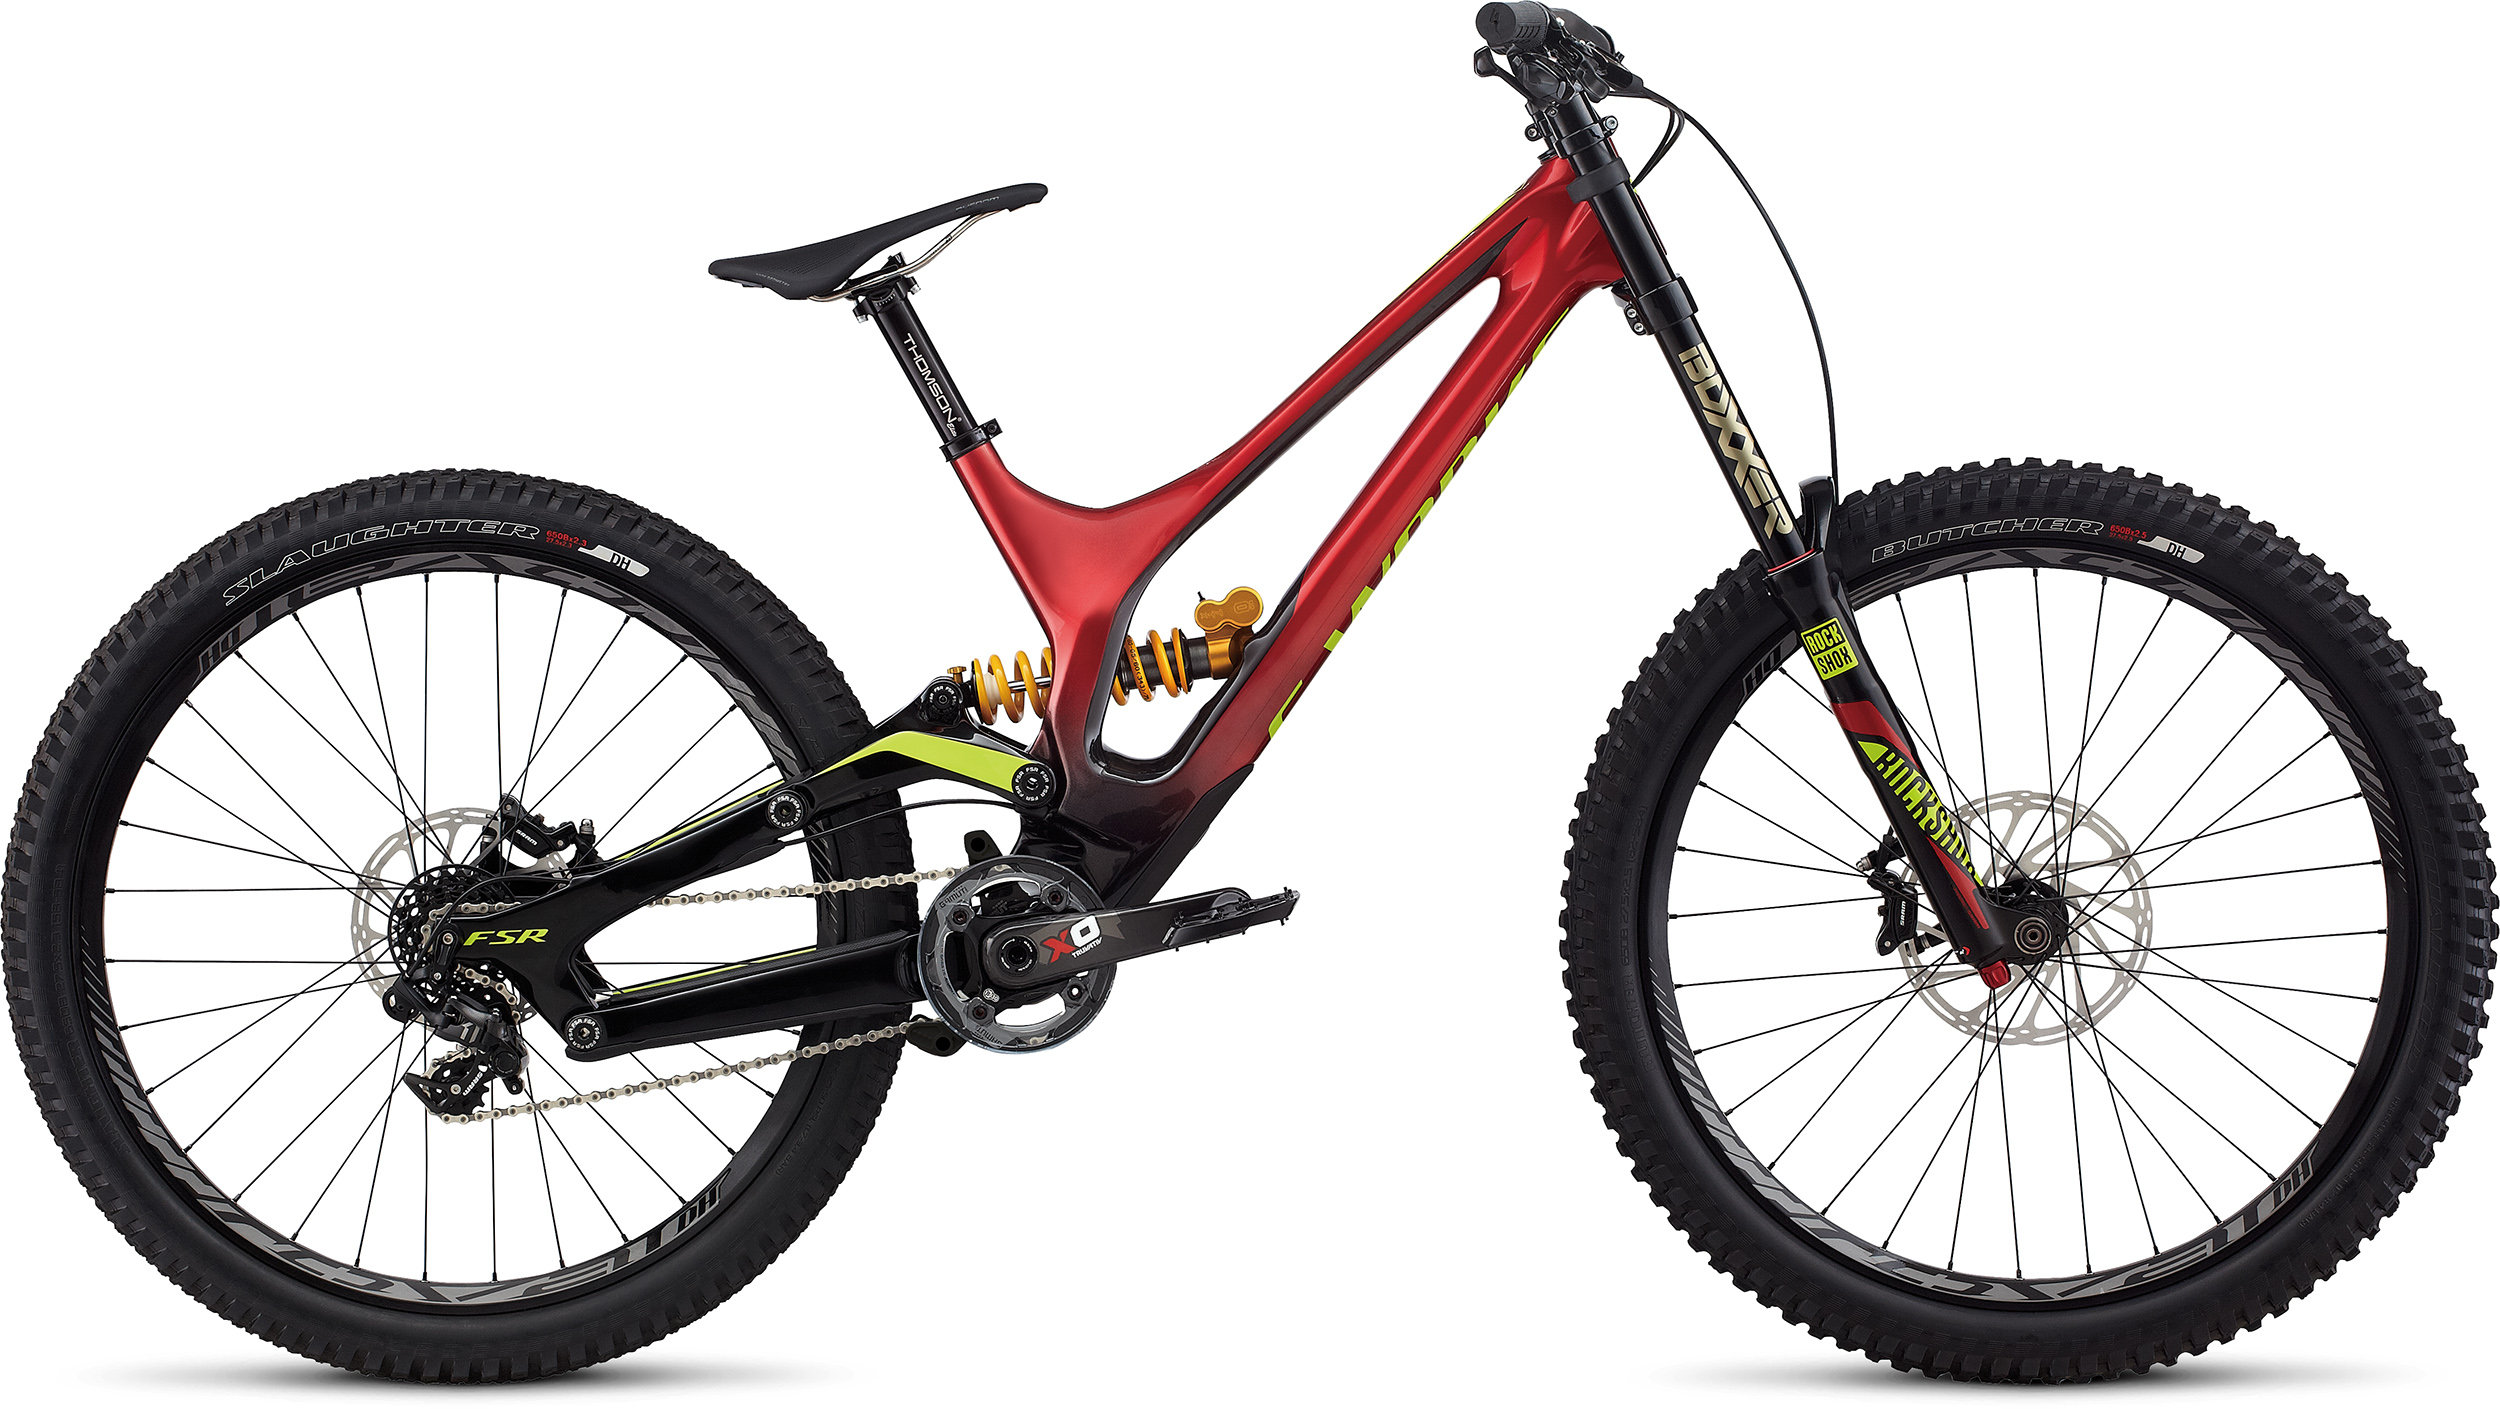 SPECIALIZED SW DEMO 8 FSR CARBON 650B CNDYRED/BLK/HYP LNG - Alpha Bikes